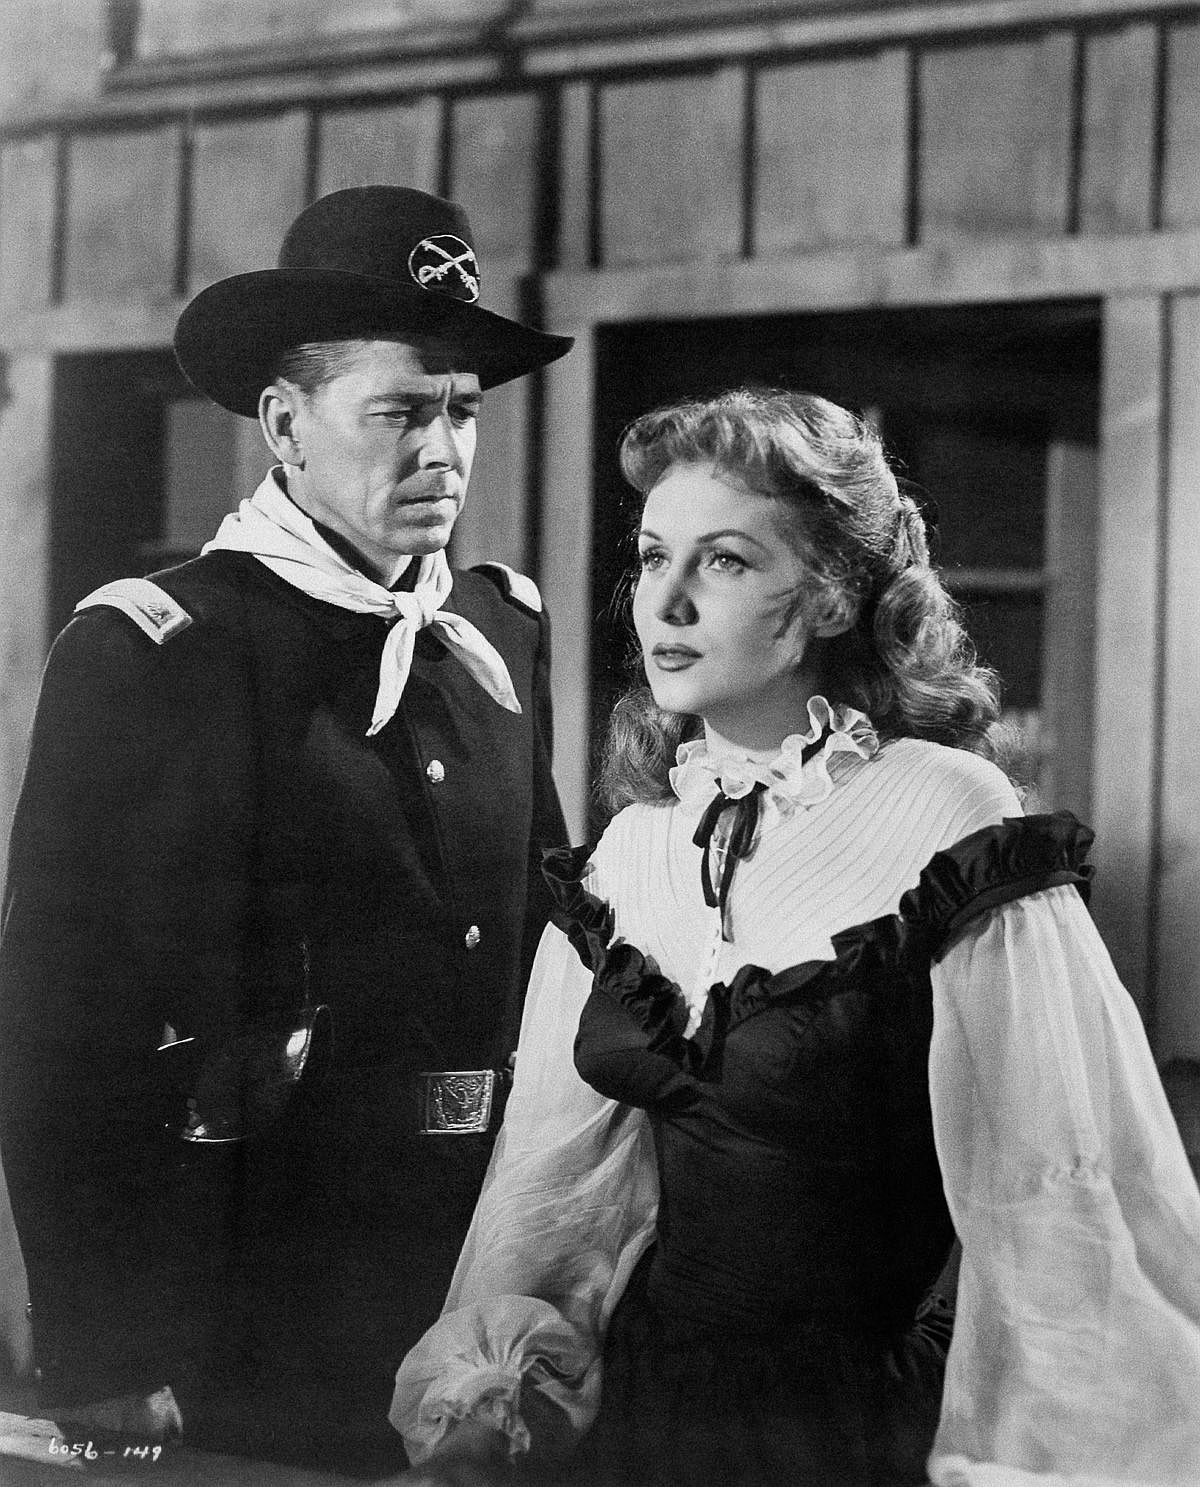 1951  Reagan performs with Rhonda Fleming in The Last Outpost.  Image: Mondadori/Getty Images